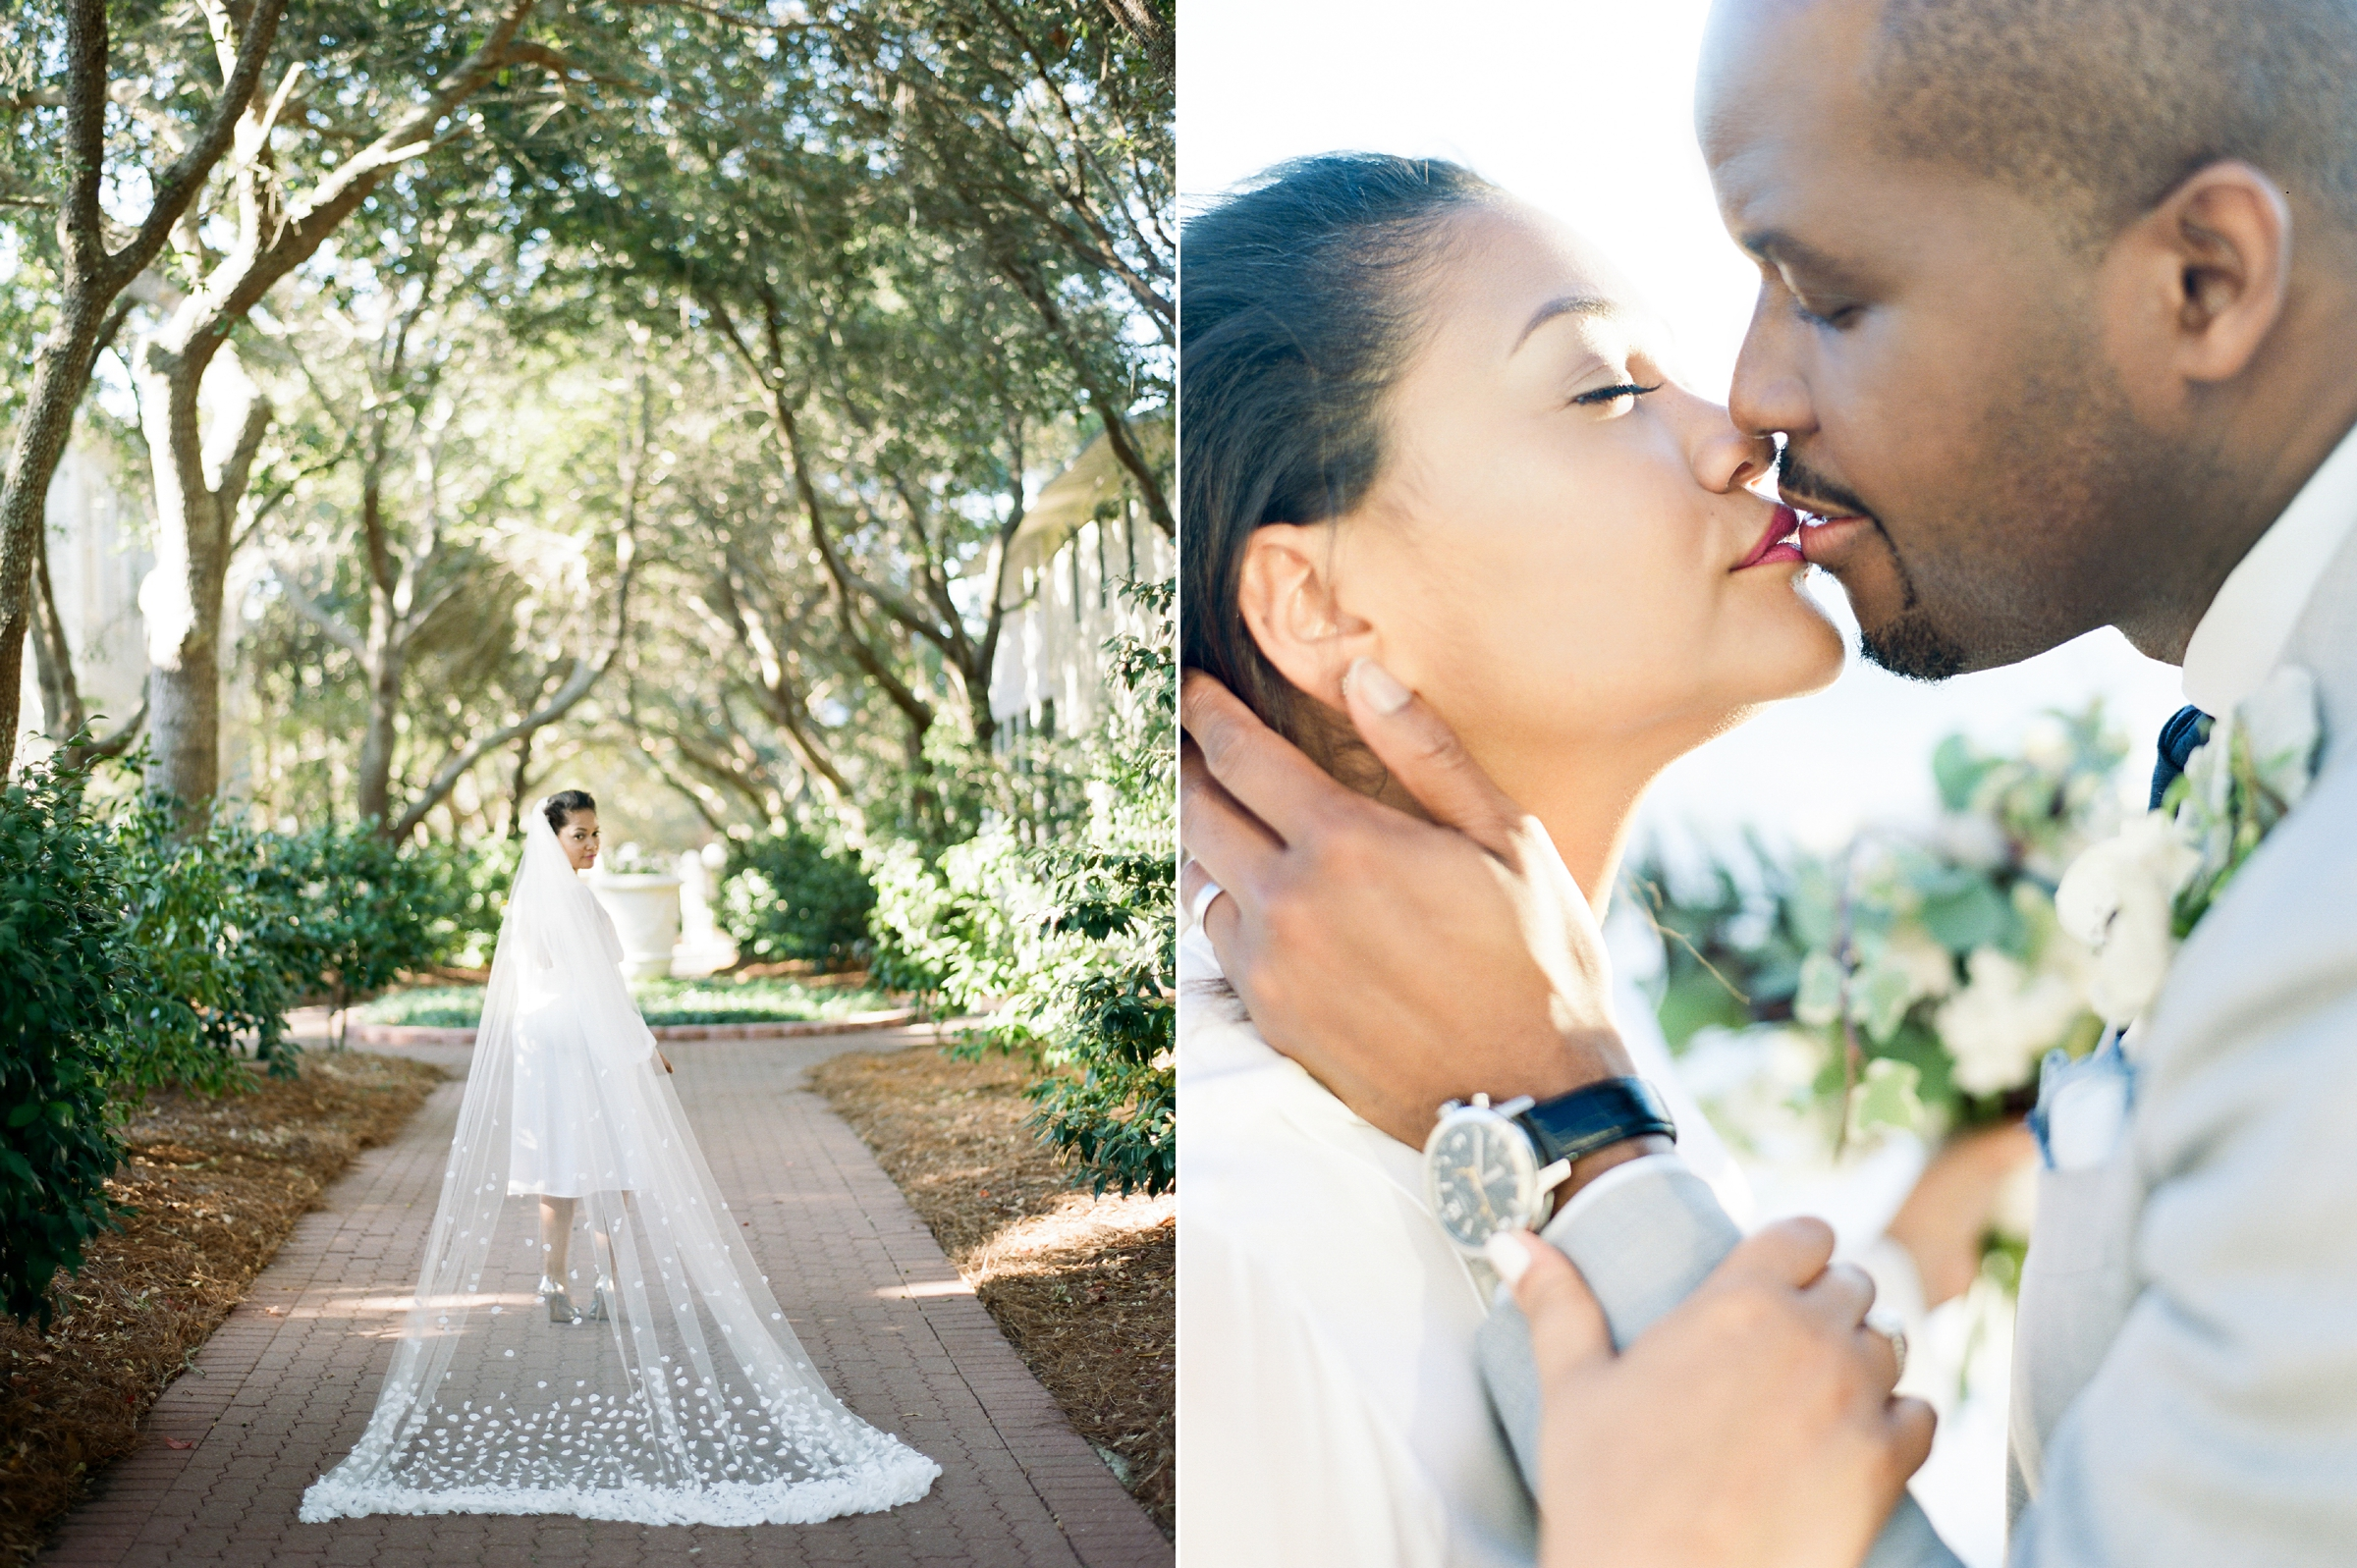 carillon_beach_wedding_photographer_shannon_griffin_0002-1.jpg